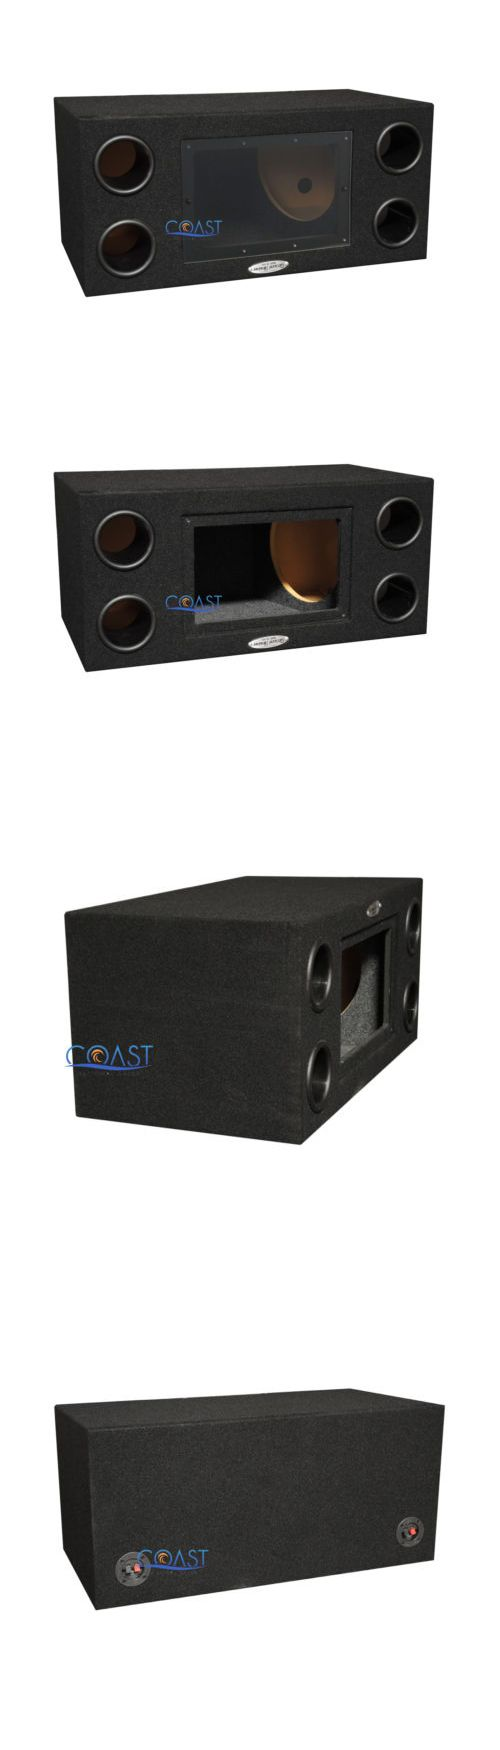 Skema box speaker woofer search results woodworking project ideas - Speaker Sub Enclosures Ground Shaker Car Audio 10 Dual Ports Bandpass Subwoofer Enclosure Box